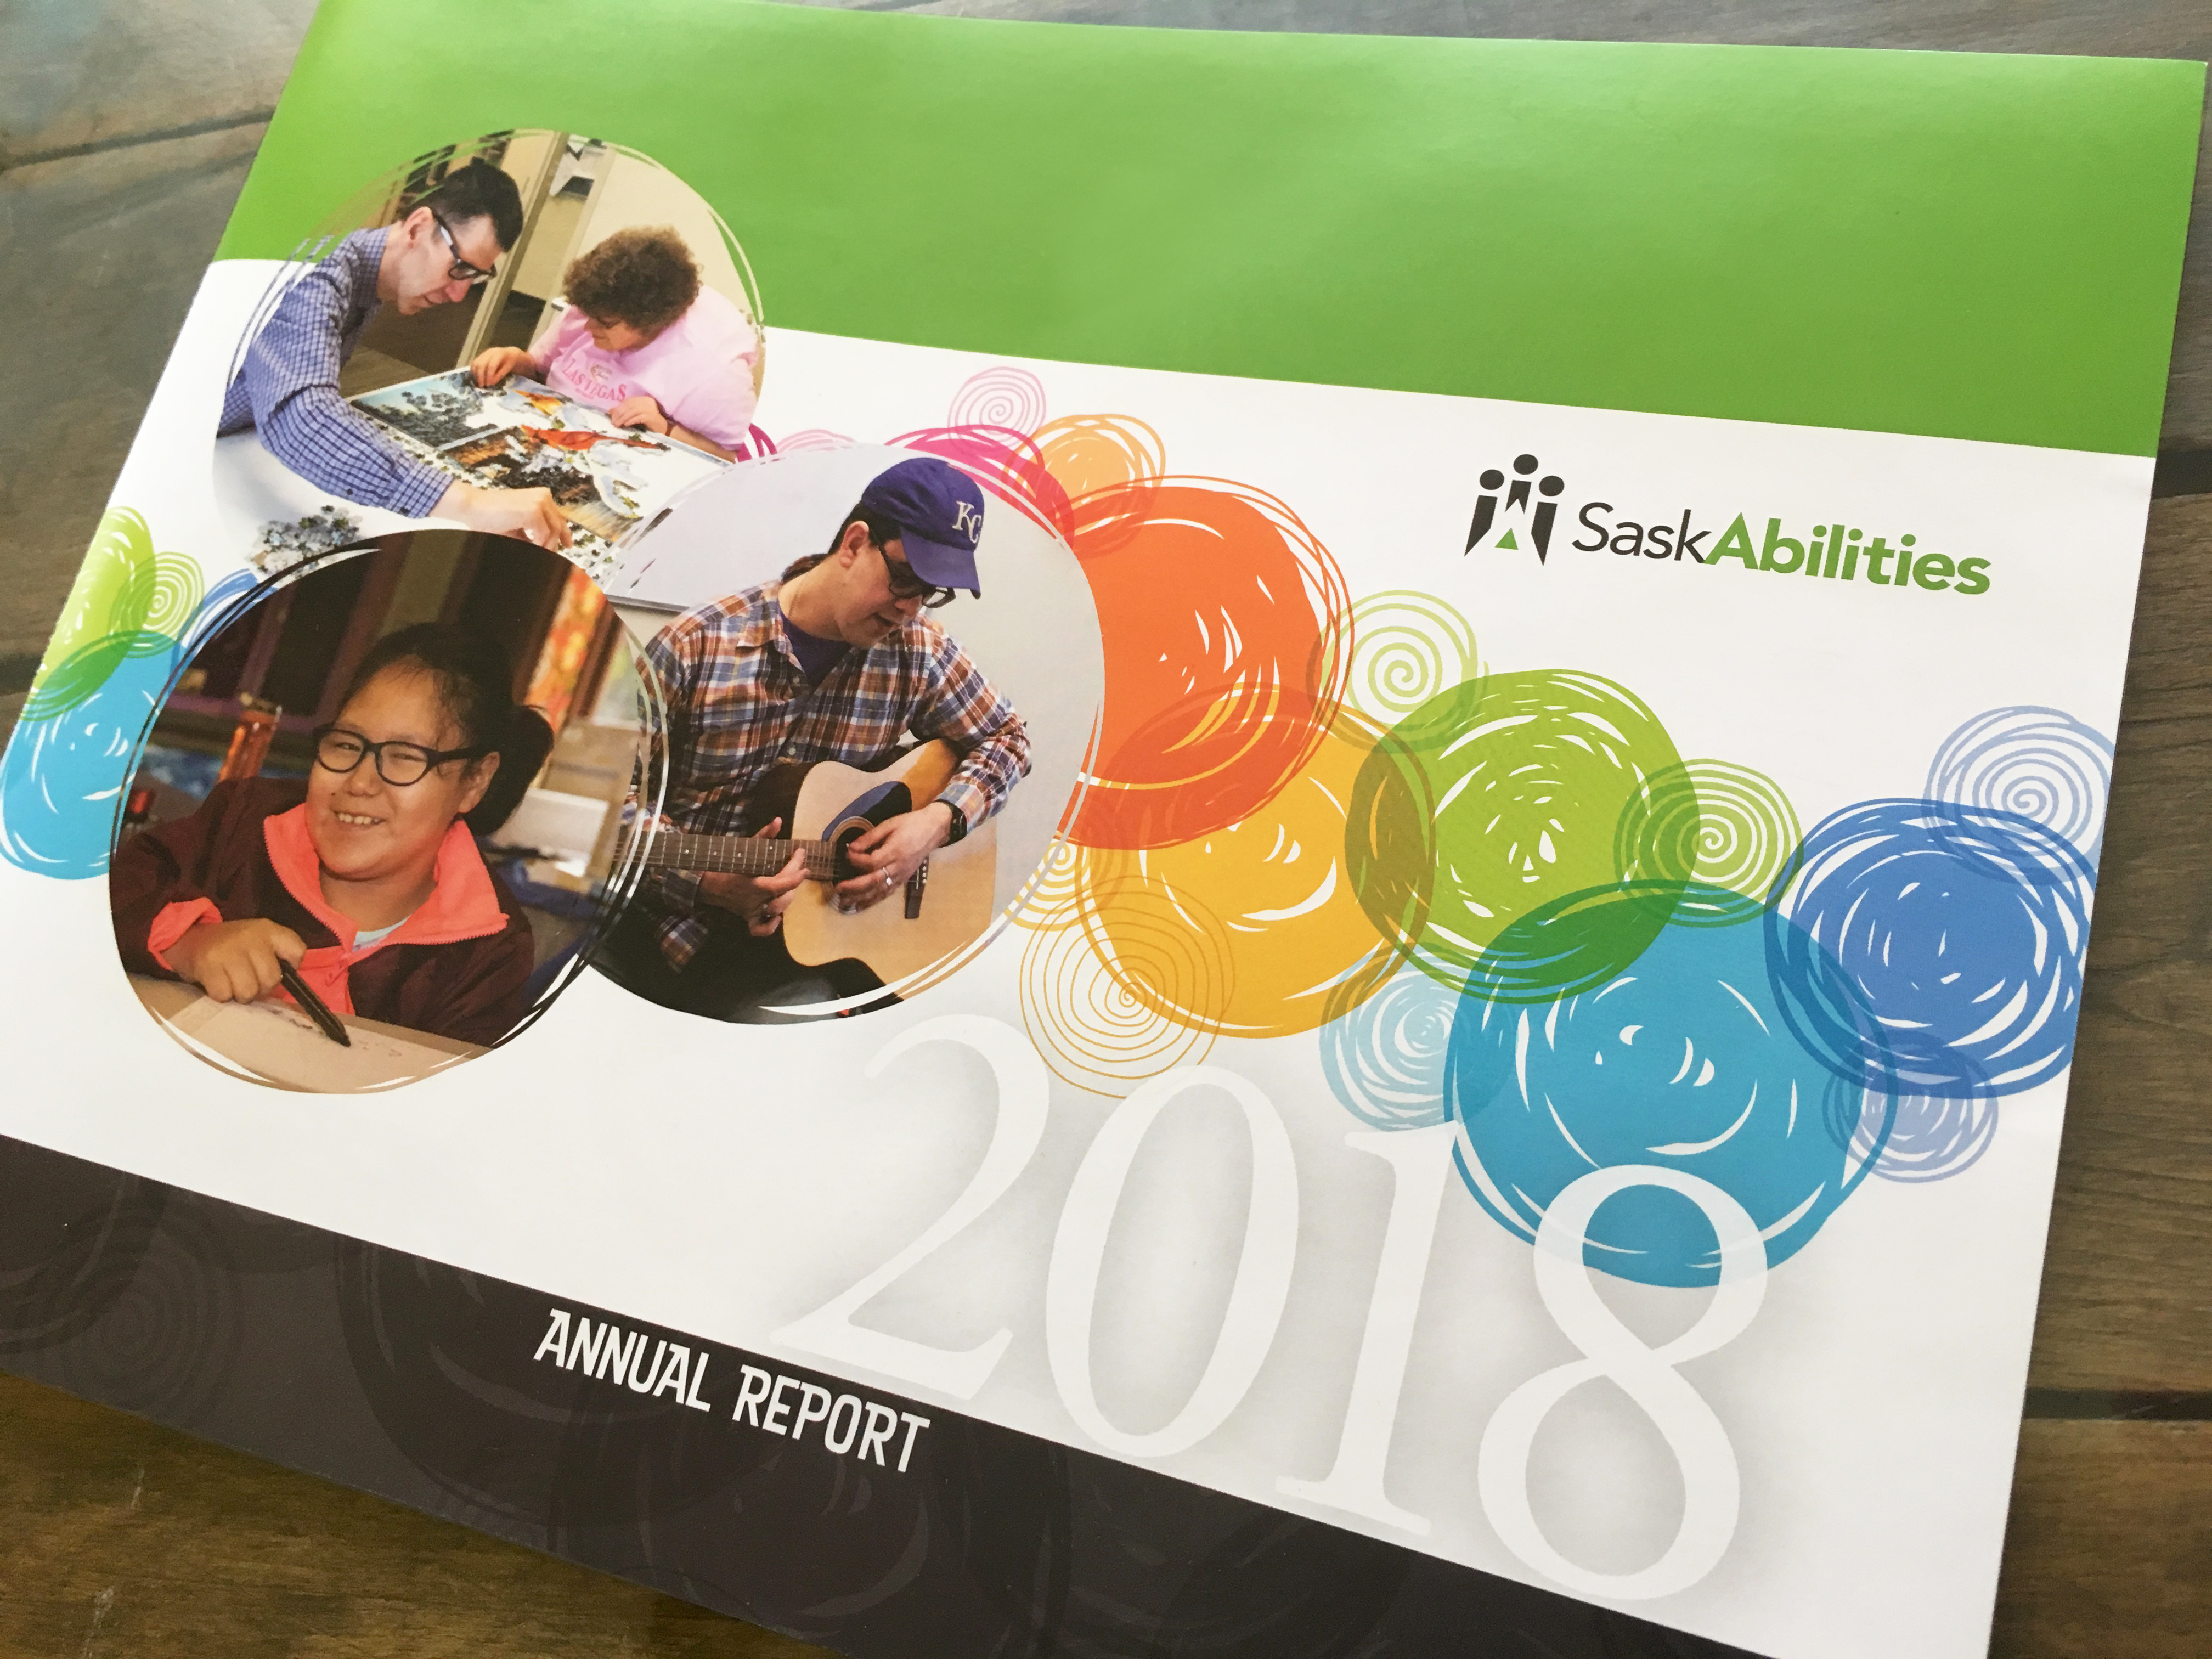 SaskAblities_AnnualReport_1